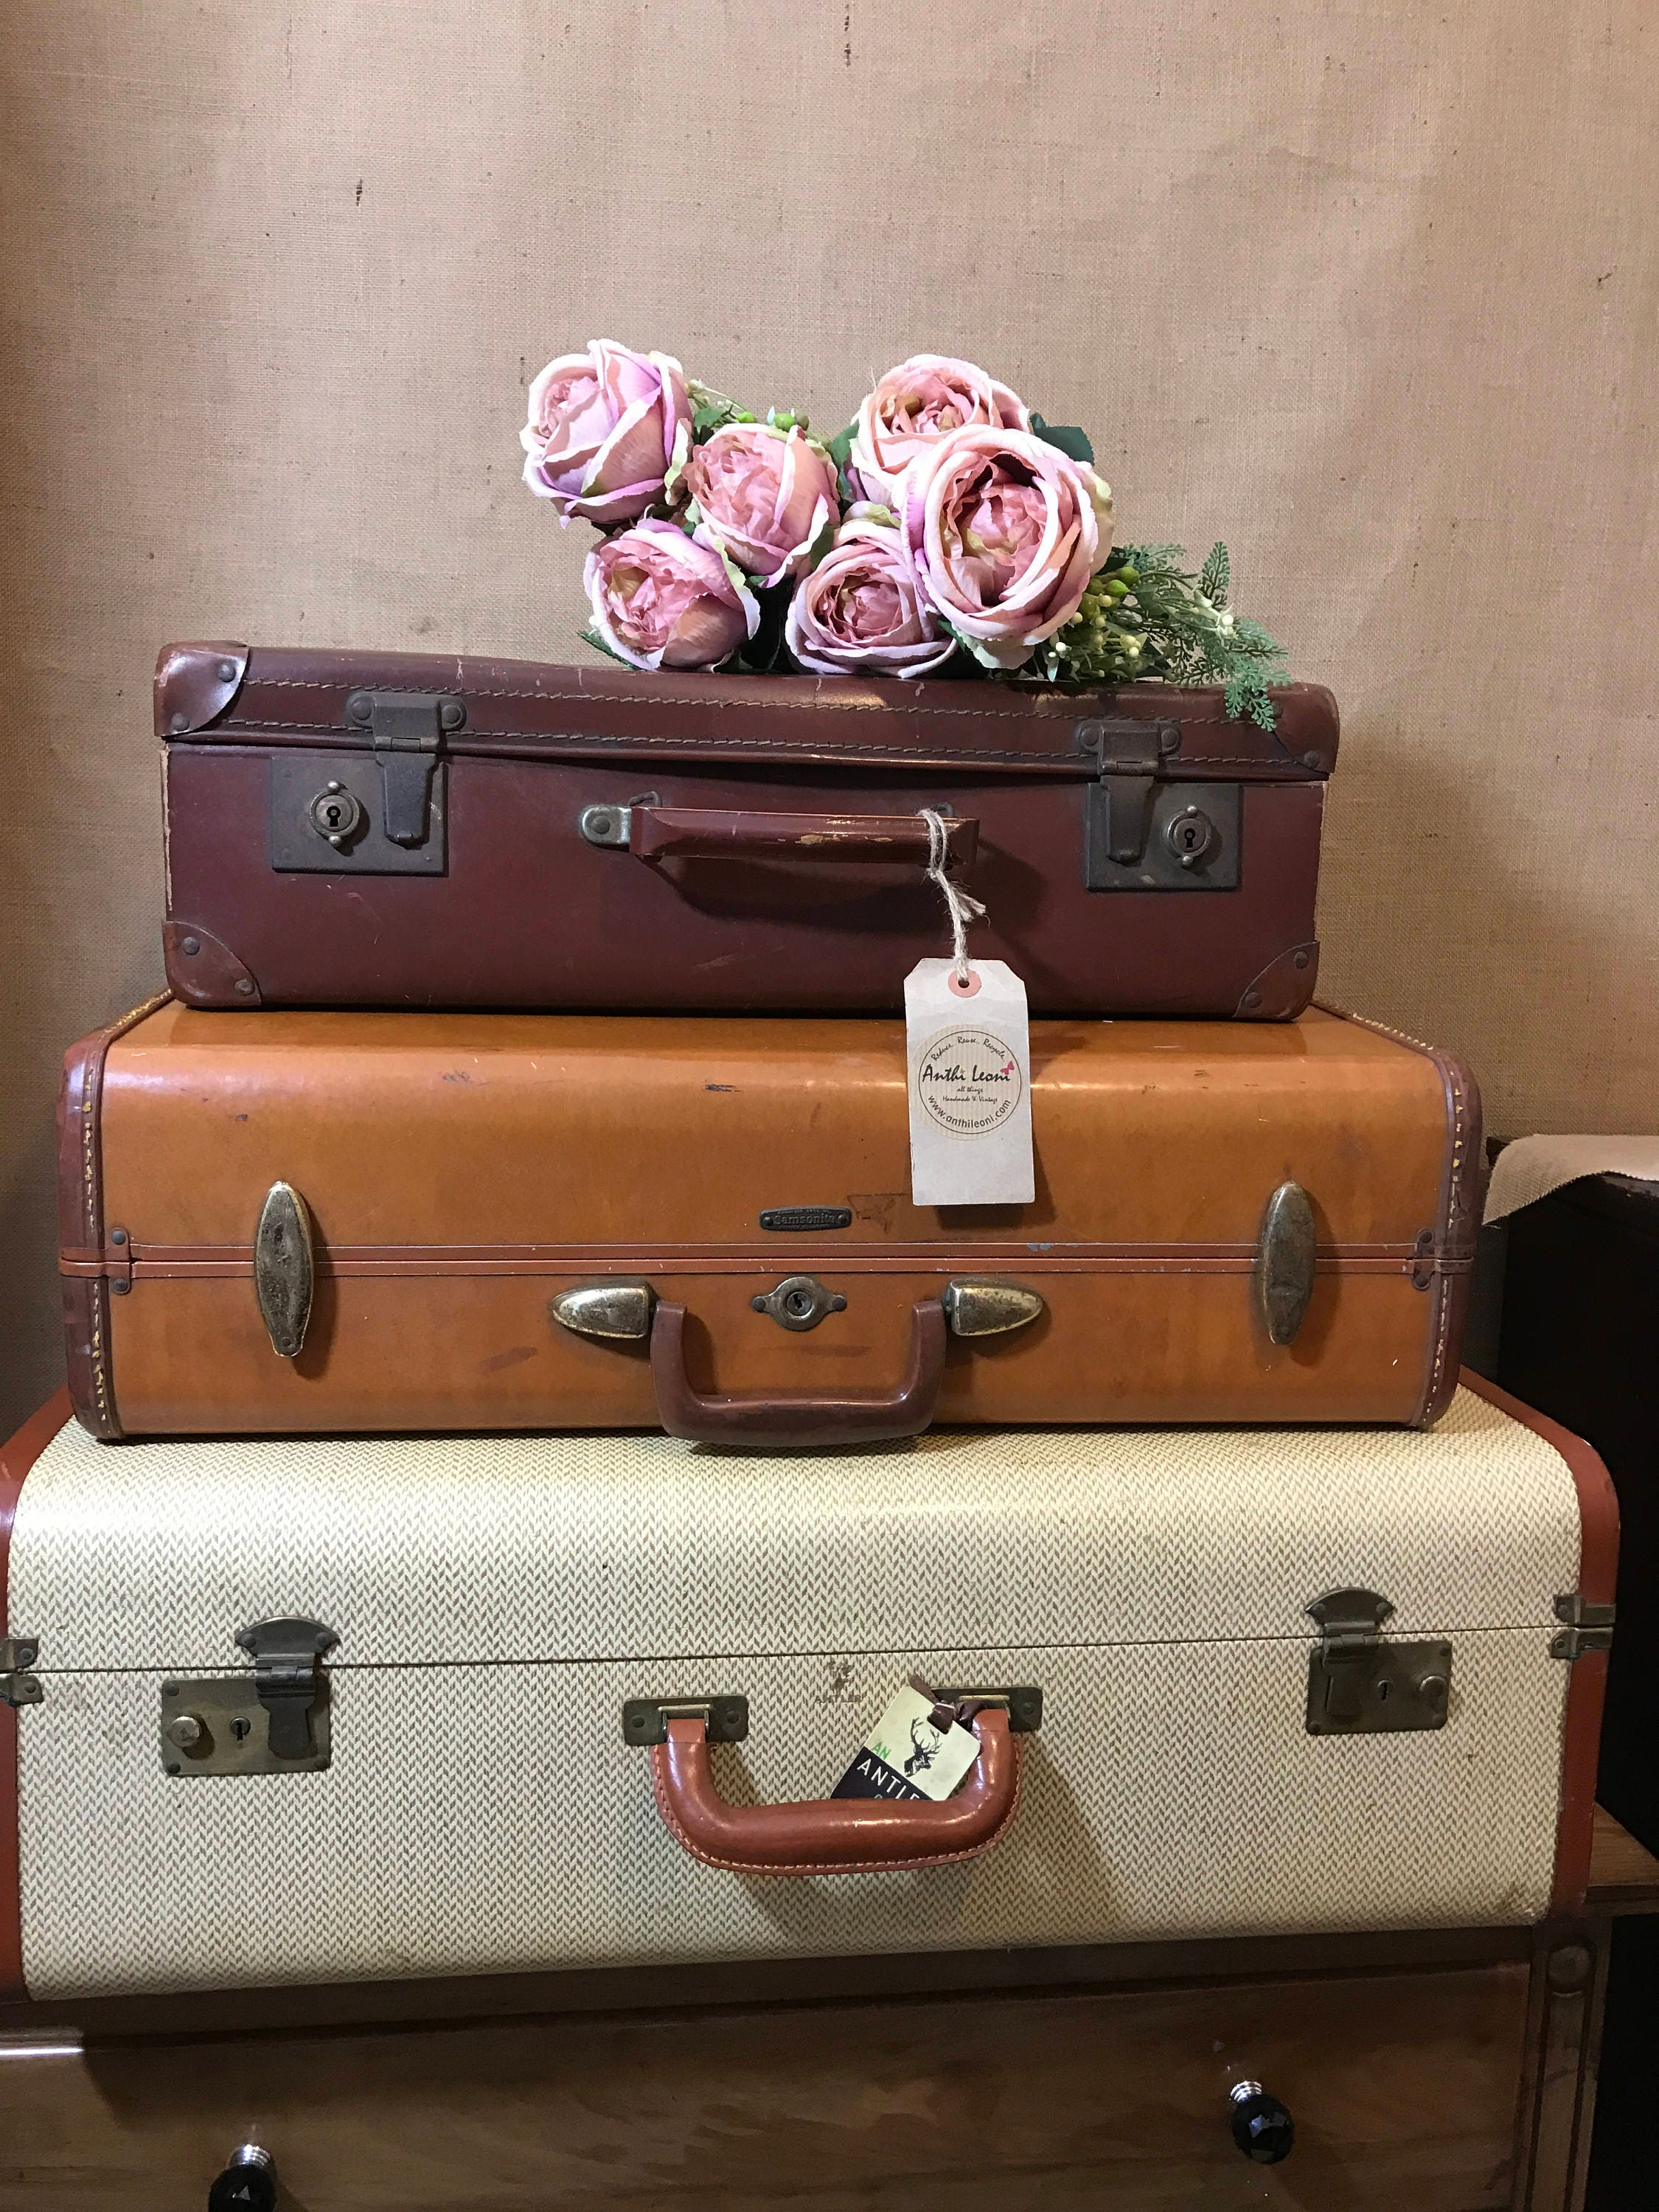 Vintage Designer Stacking Suitcases | Vintage LUGGAGE | Vintage Home Decor  | Vintage TRUNKS | Interior Design | Vintage Tan Cases